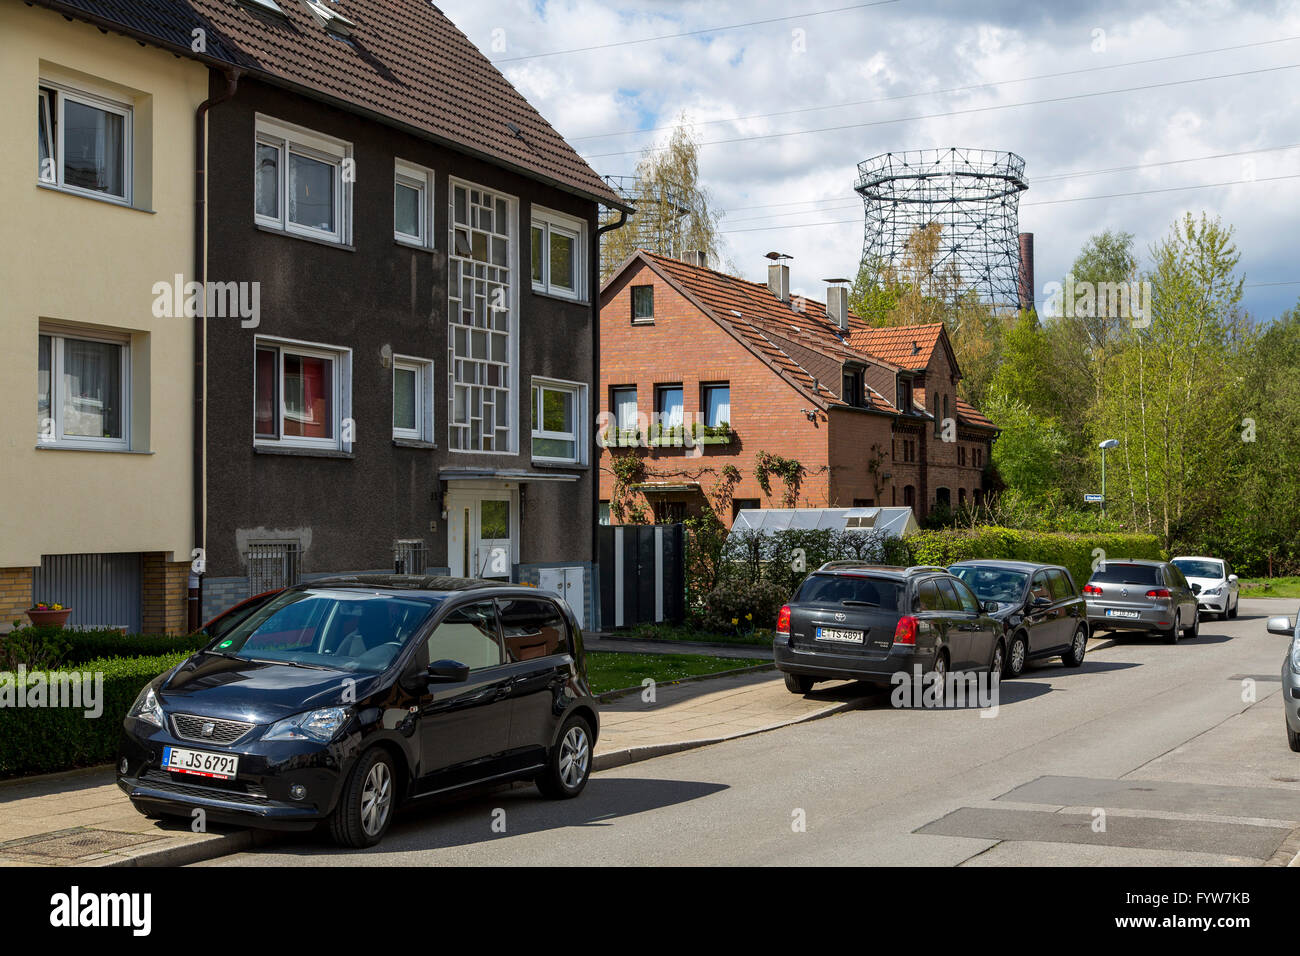 Former miners settlement near the Zollverein coking plant, in Essen Germany, - Stock Image